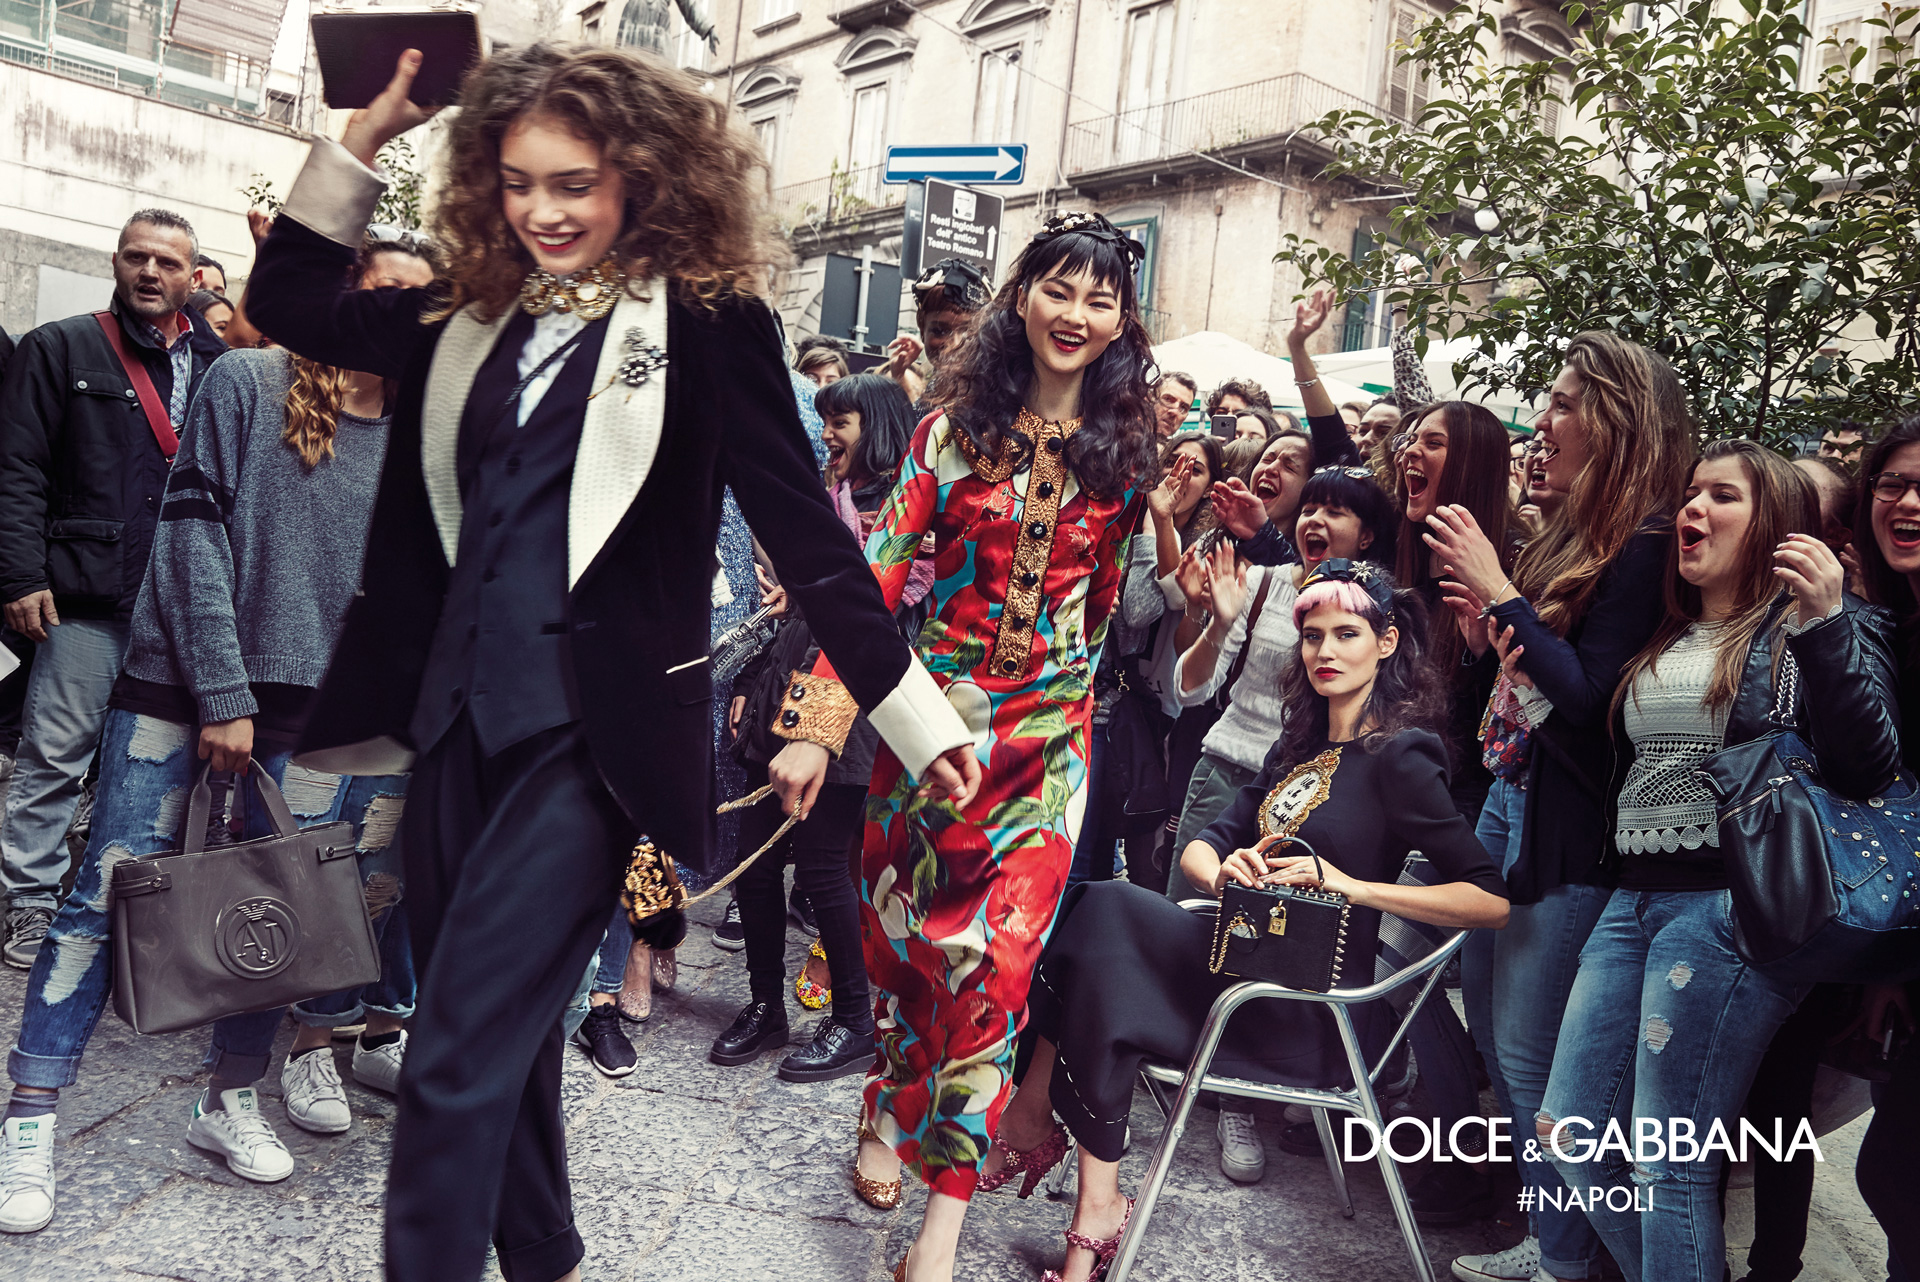 Dolce-Gabbana-Fall-Winter-2016-2017-Ad-Campaign-Naples-1